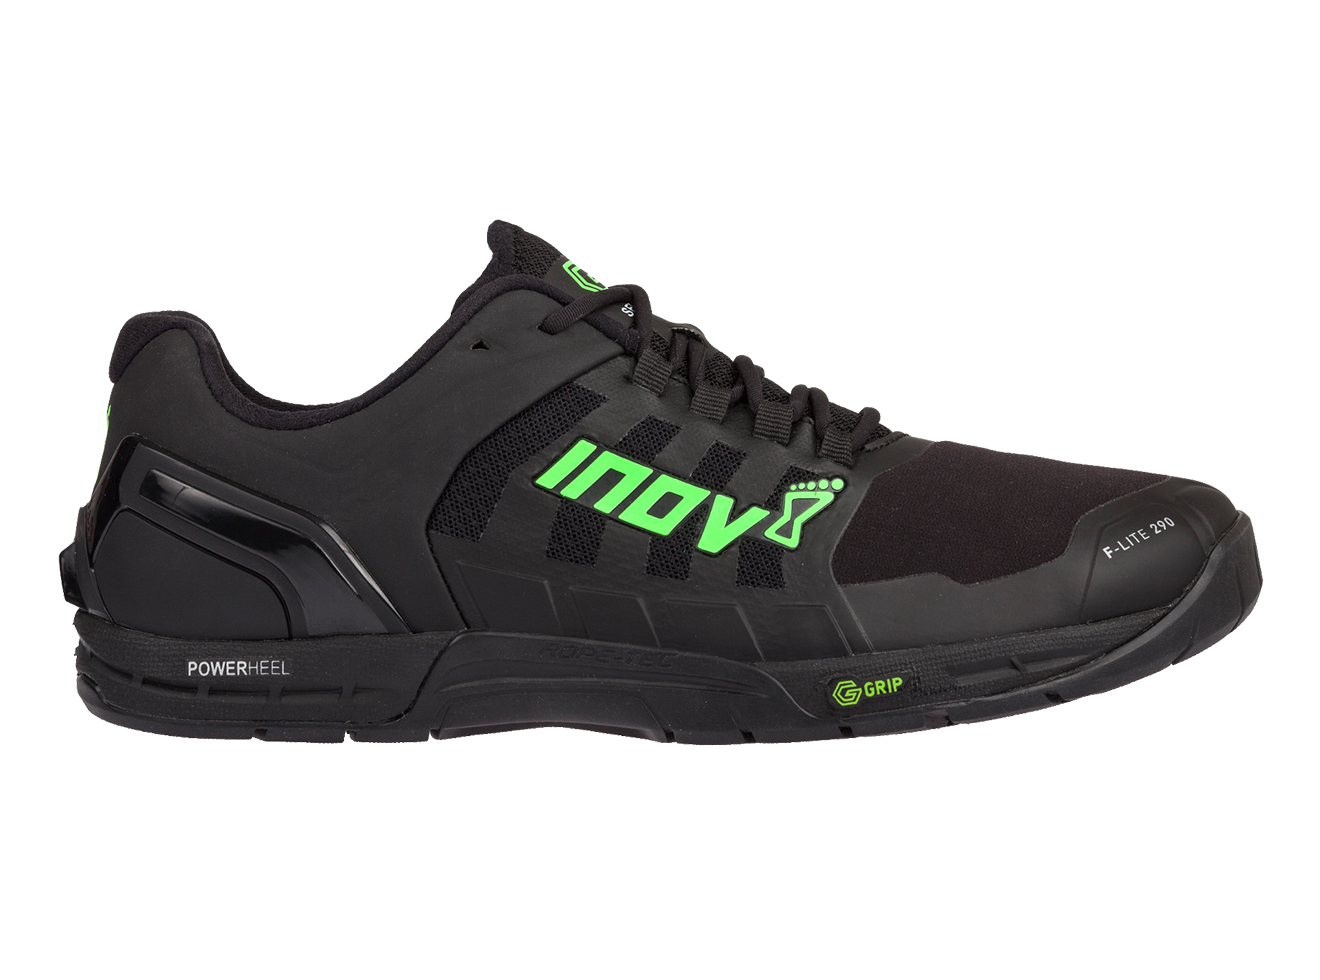 45f93ee2ec09 Best for Maximum Durability  Inov-8 F-Lite G 290. These burly sneakers ...